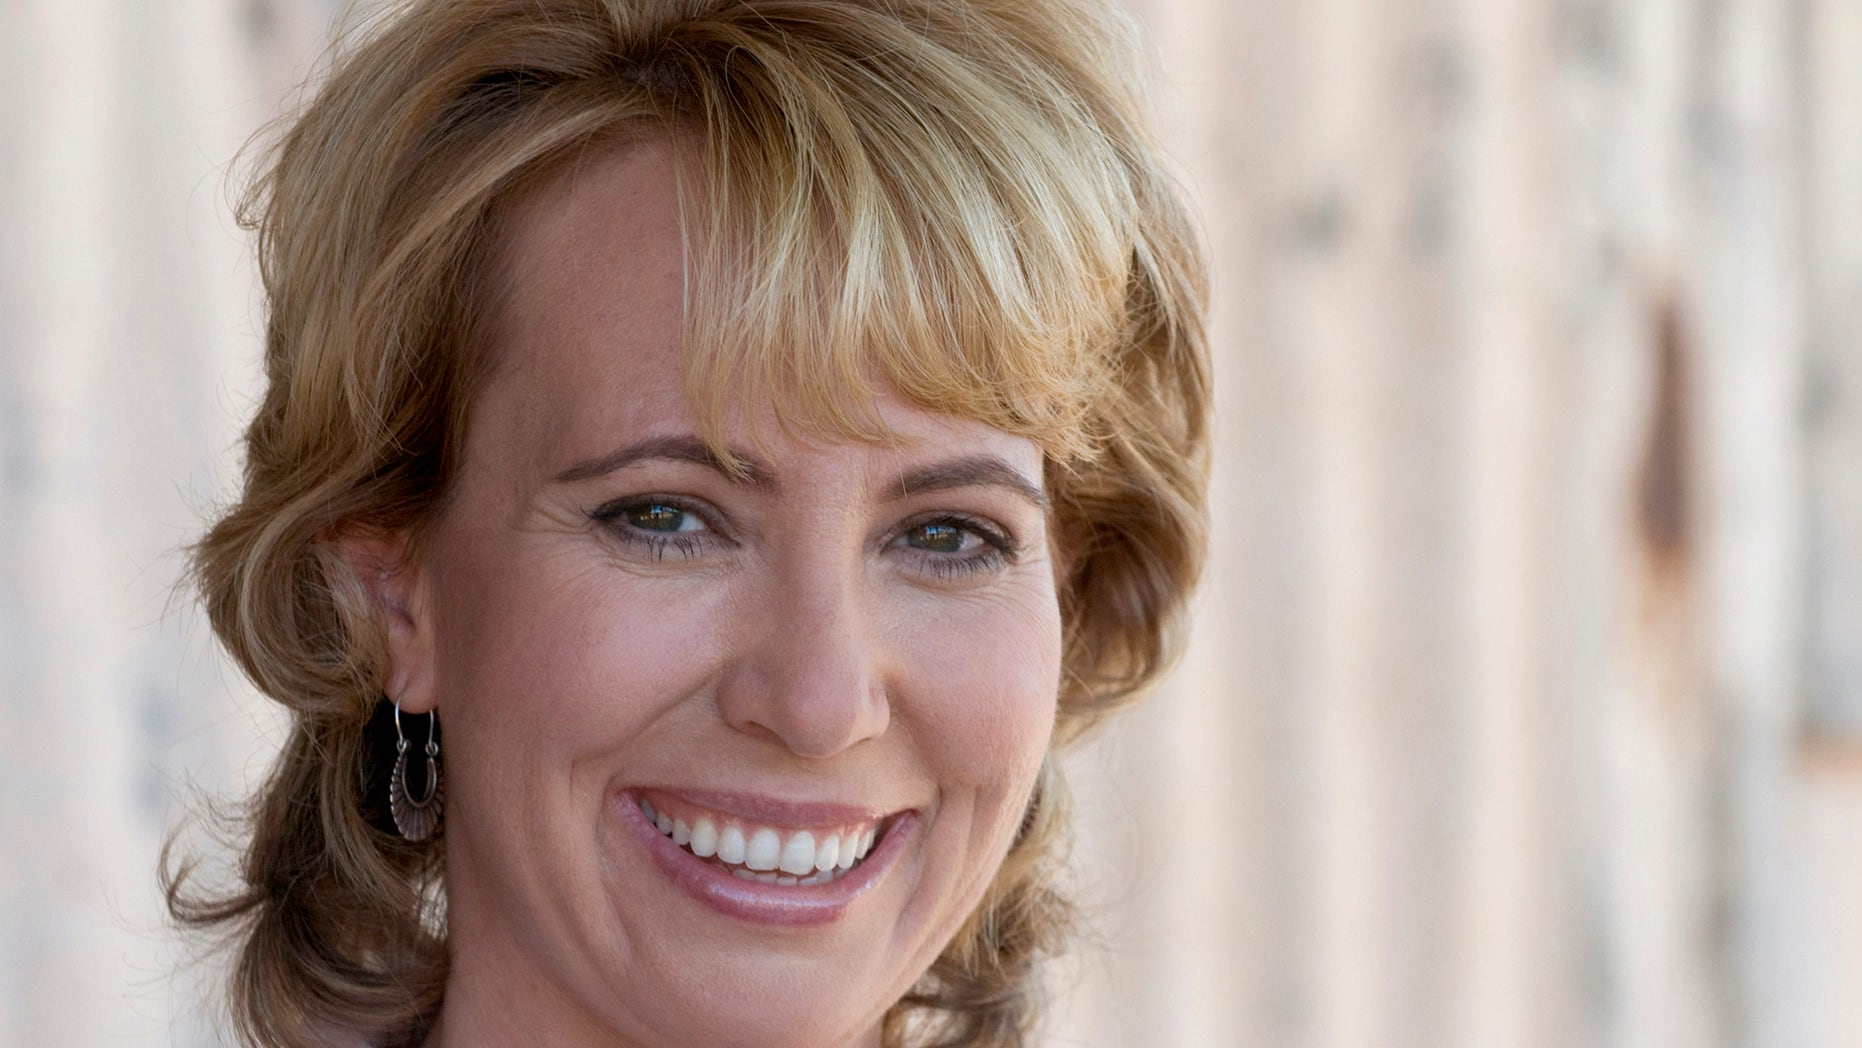 U.S. Representative Gabrielle Giffords (D-AZ) is seen in an undated handout photo provided by her Congressional campaign, January 8, 2011. Giffords was hit in a shooting on Saturday at a public event of the Congresswoman's at a Tucson, Arizona grocery store.